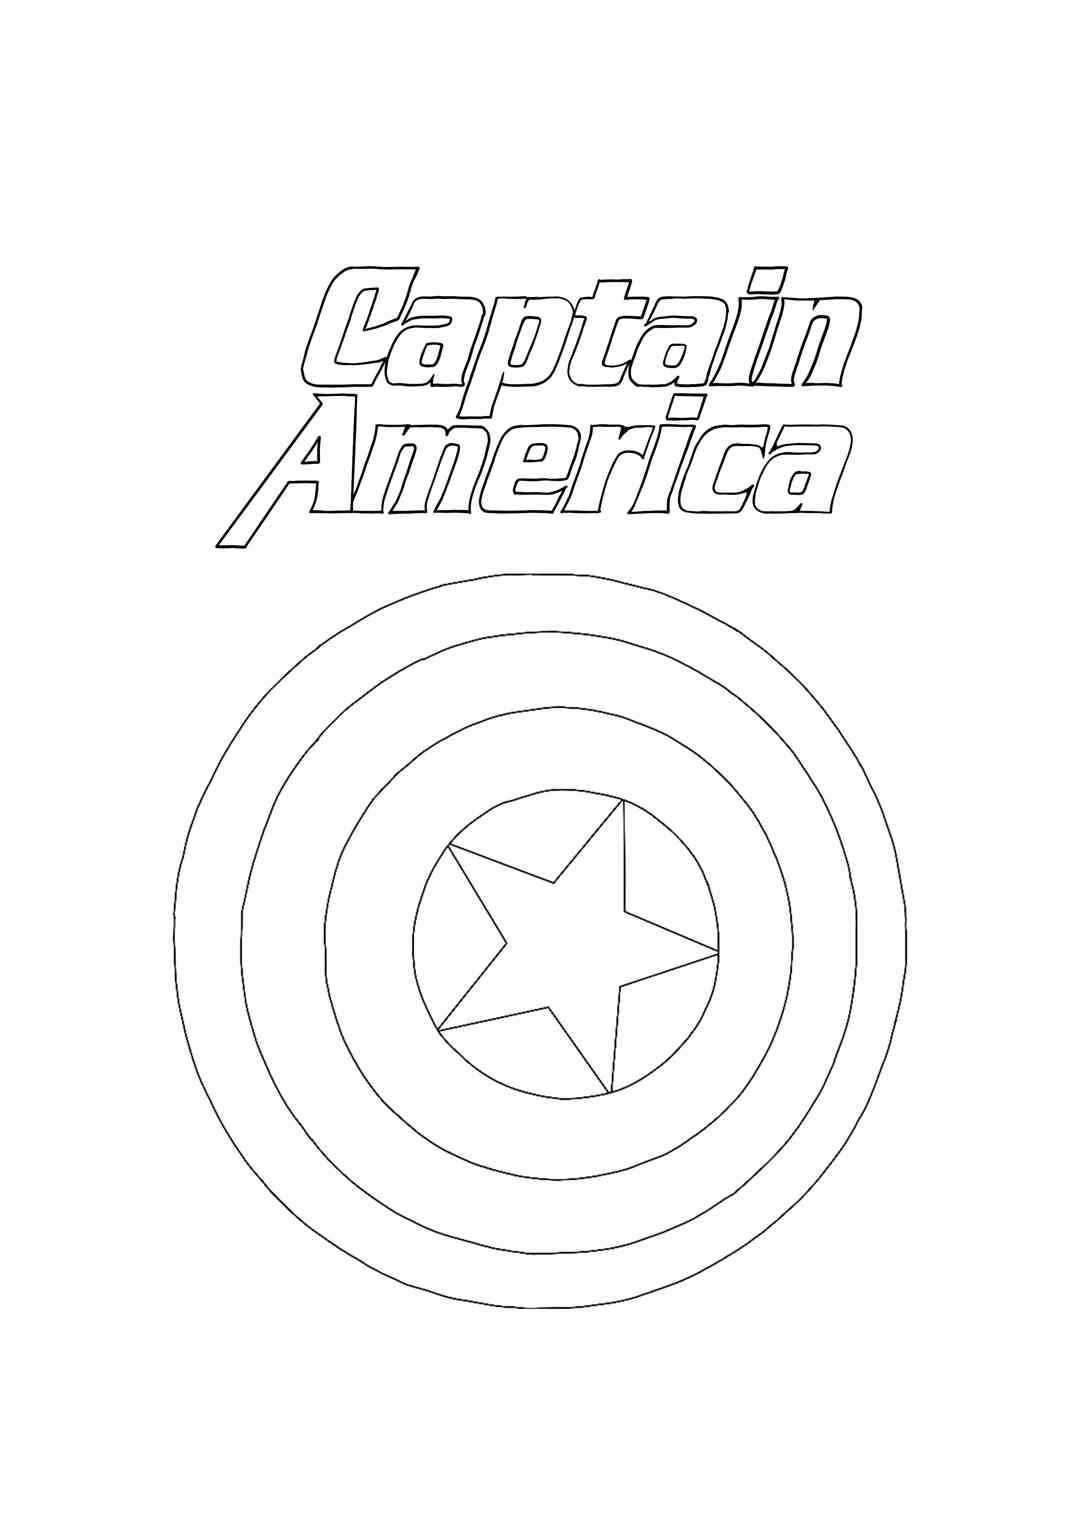 Captain America Shield Coloring Page In 2020 Captain America Coloring Pages Captain America Shield Coloring Pages